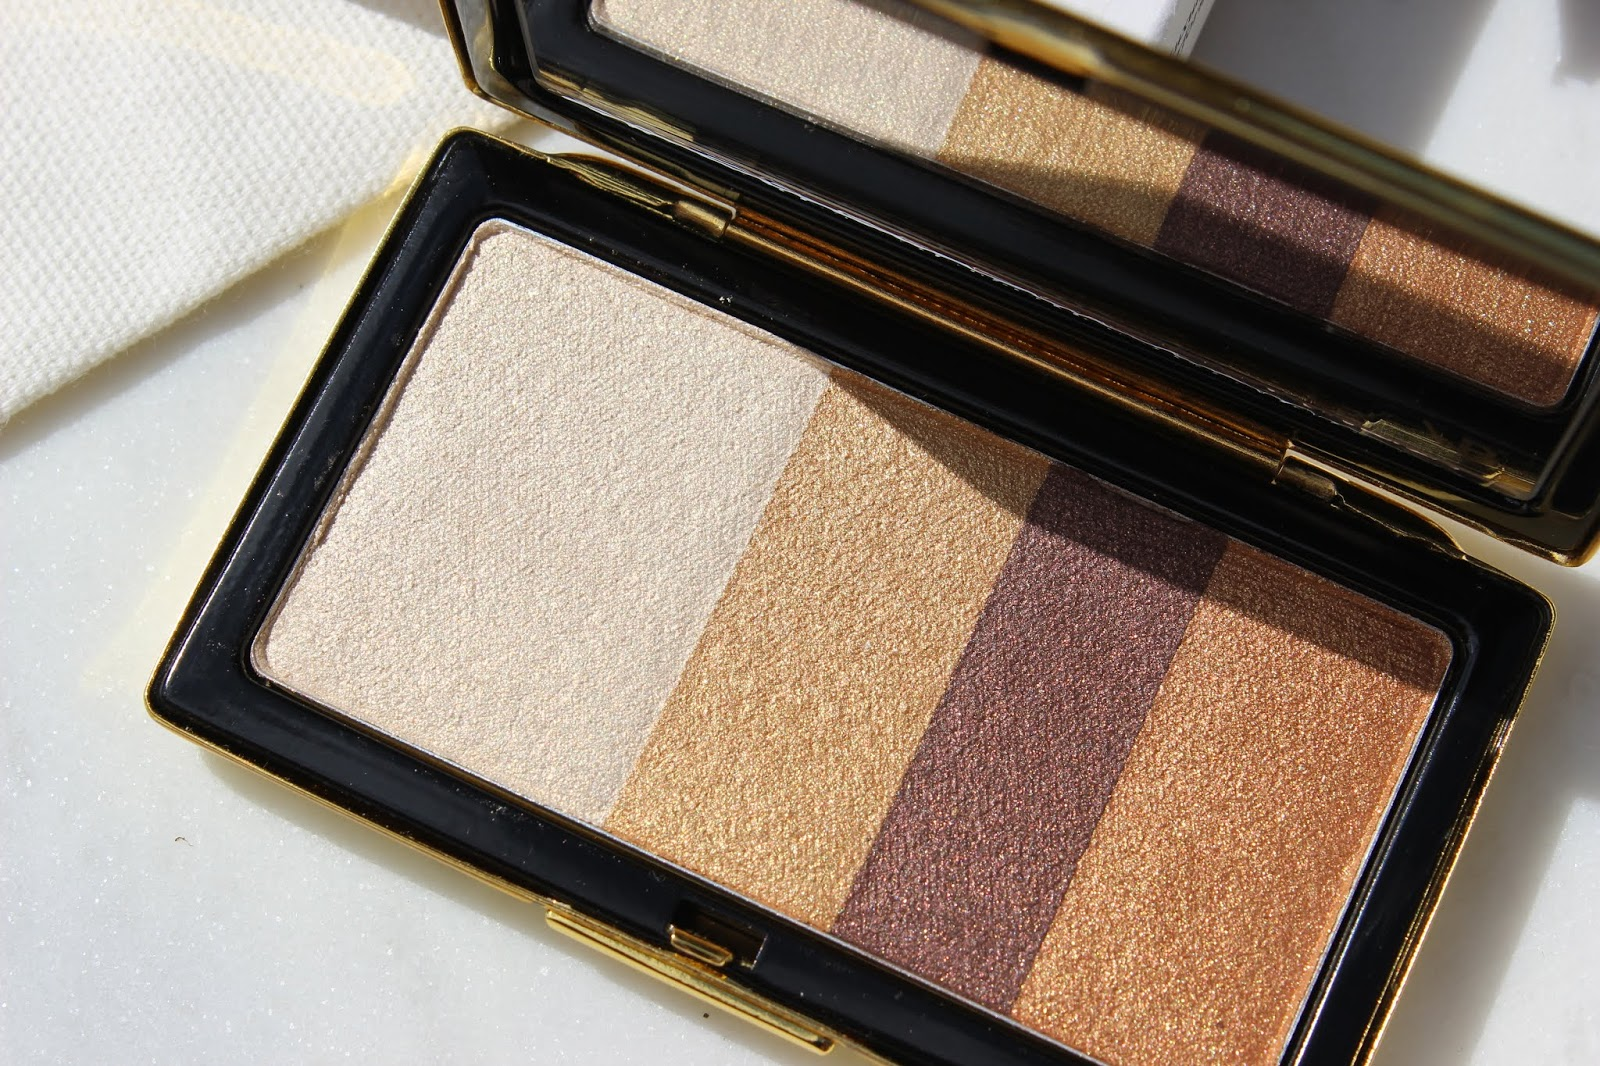 Victoria Beckham Beauty Smoky Eye Brick in Silk | Review & Swatches